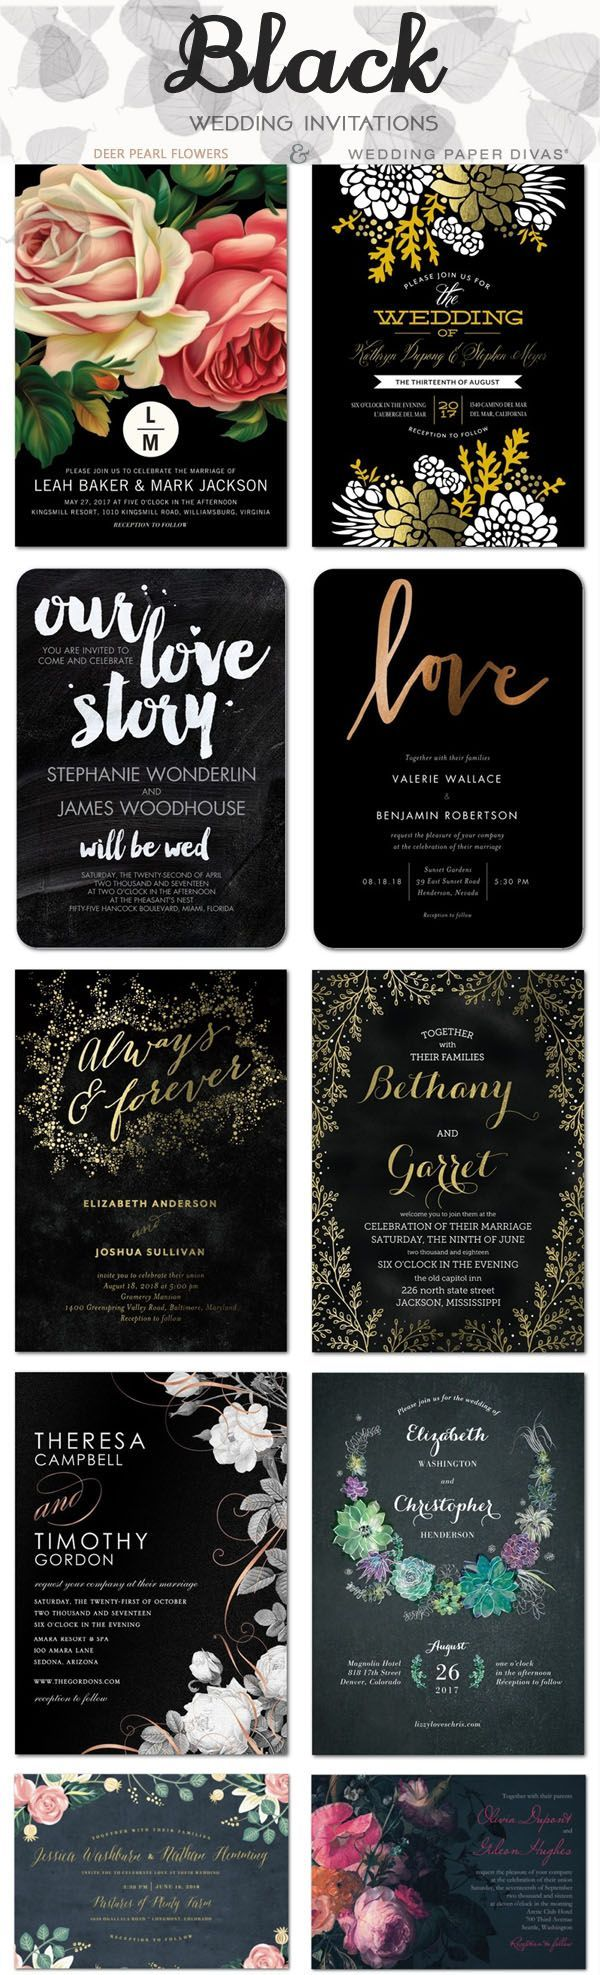 127 Best Wedding Invitations Images On Pinterest Wedding Stuff